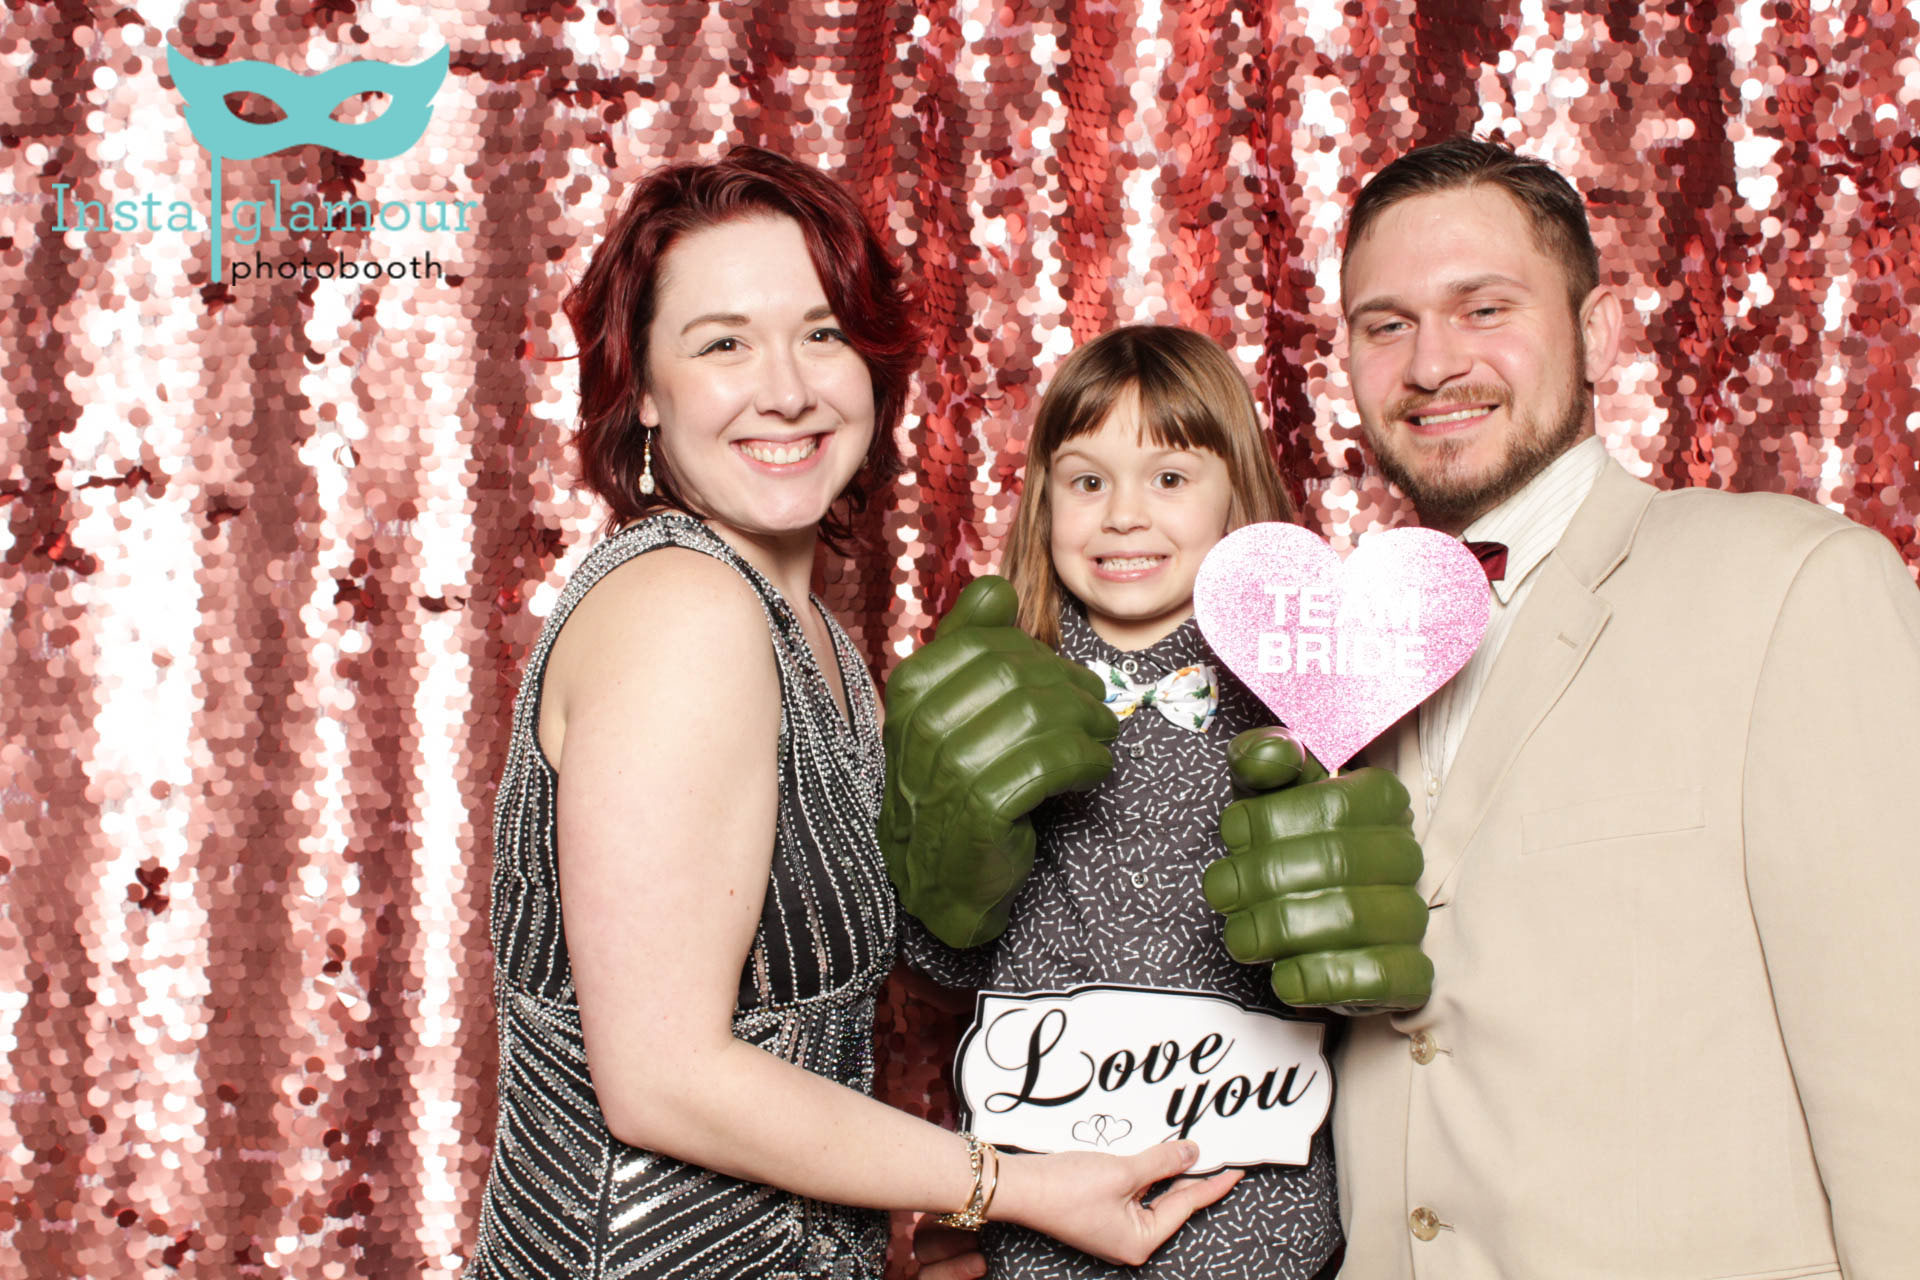 Corinne Stephen Wedding Delaware Photo Booth Rental